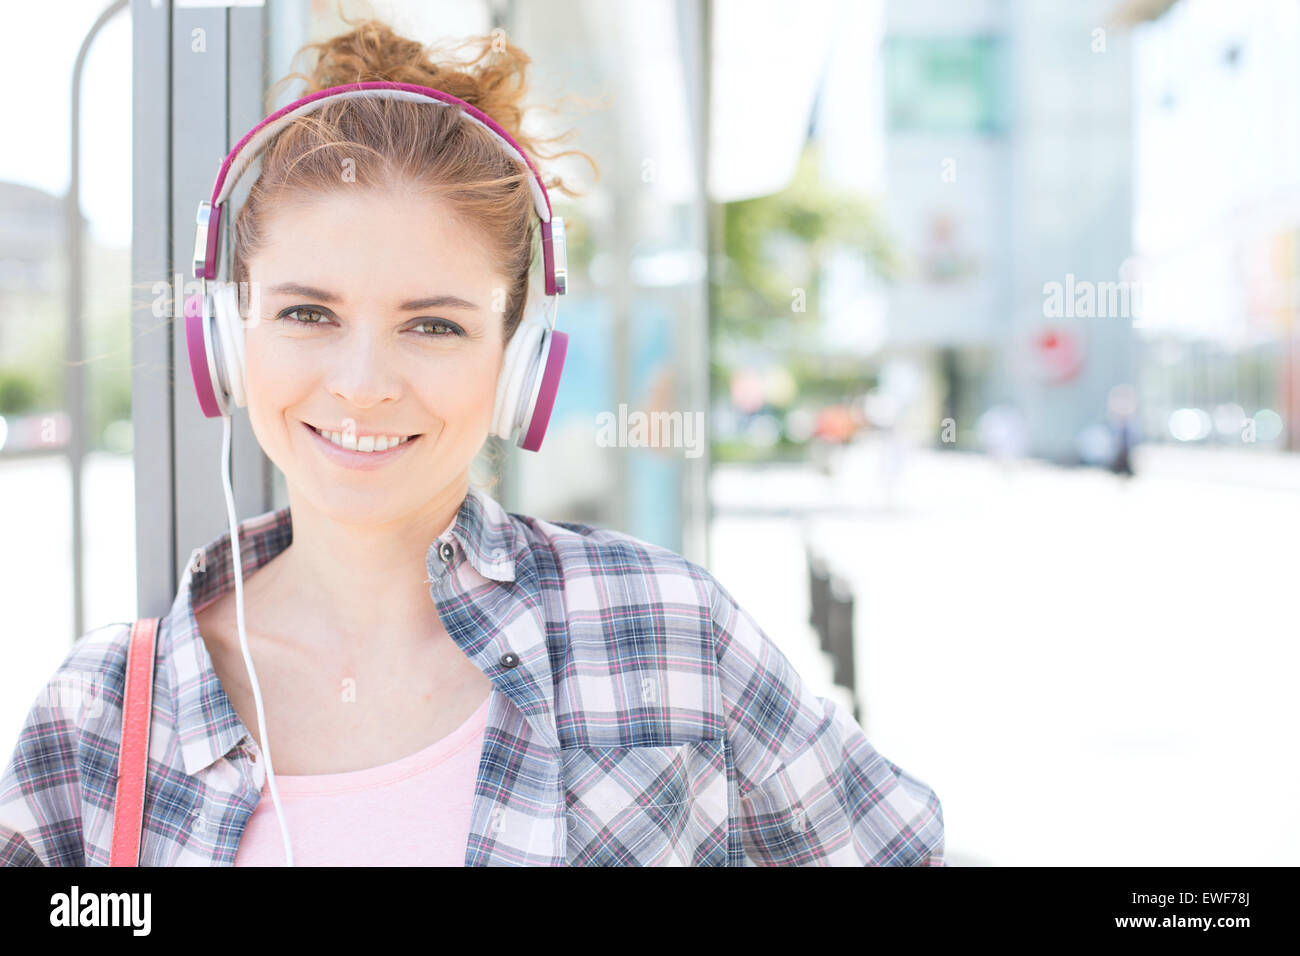 Portrait of happy woman wearing headphones while waiting at bus stop - Stock Image